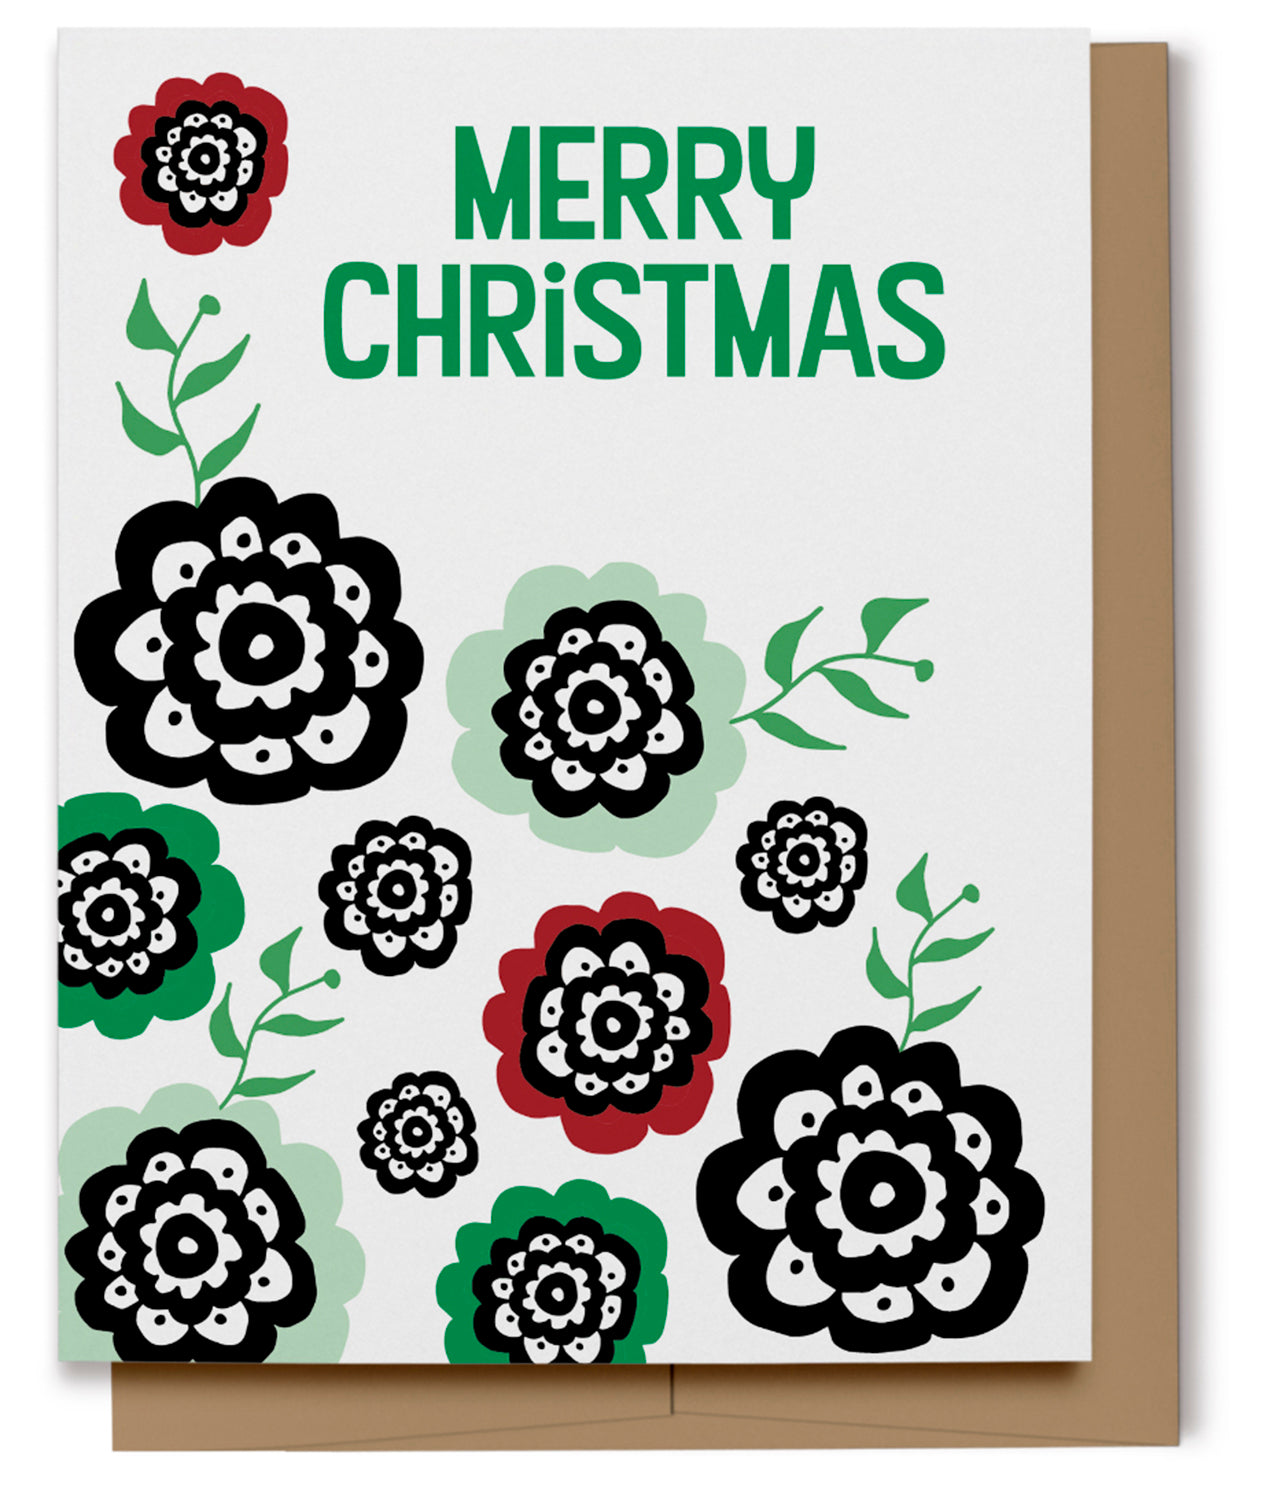 Merry Christmas Flowers Card (100% Recycled)